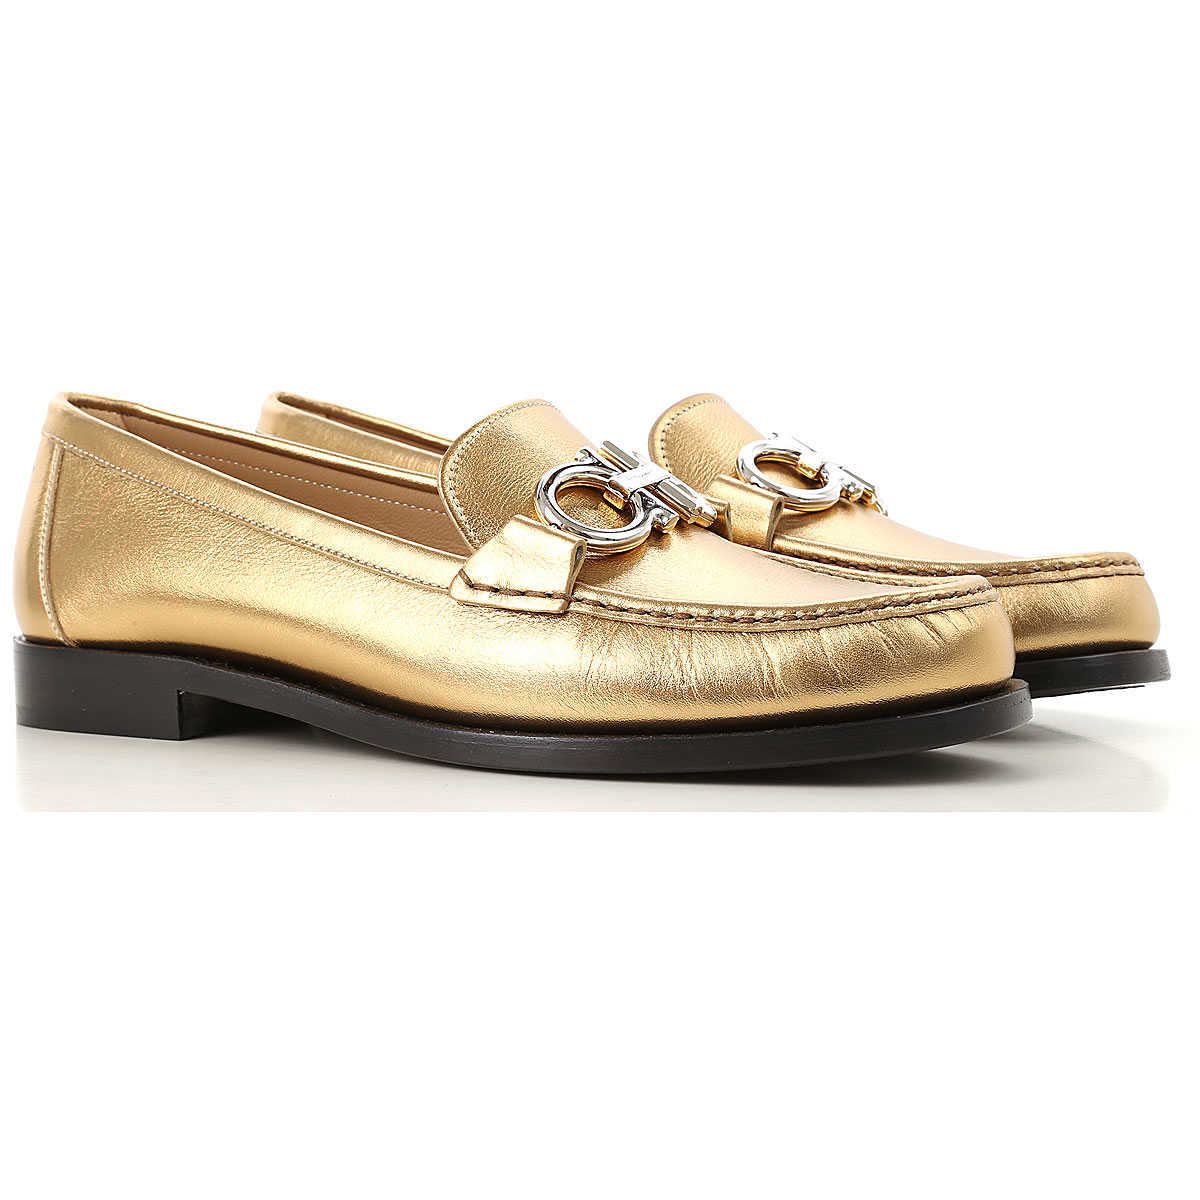 Salvatore Ferragamo Loafers for Women On Sale in Outlet Gold DK - GOOFASH - Womens FLAT SHOES